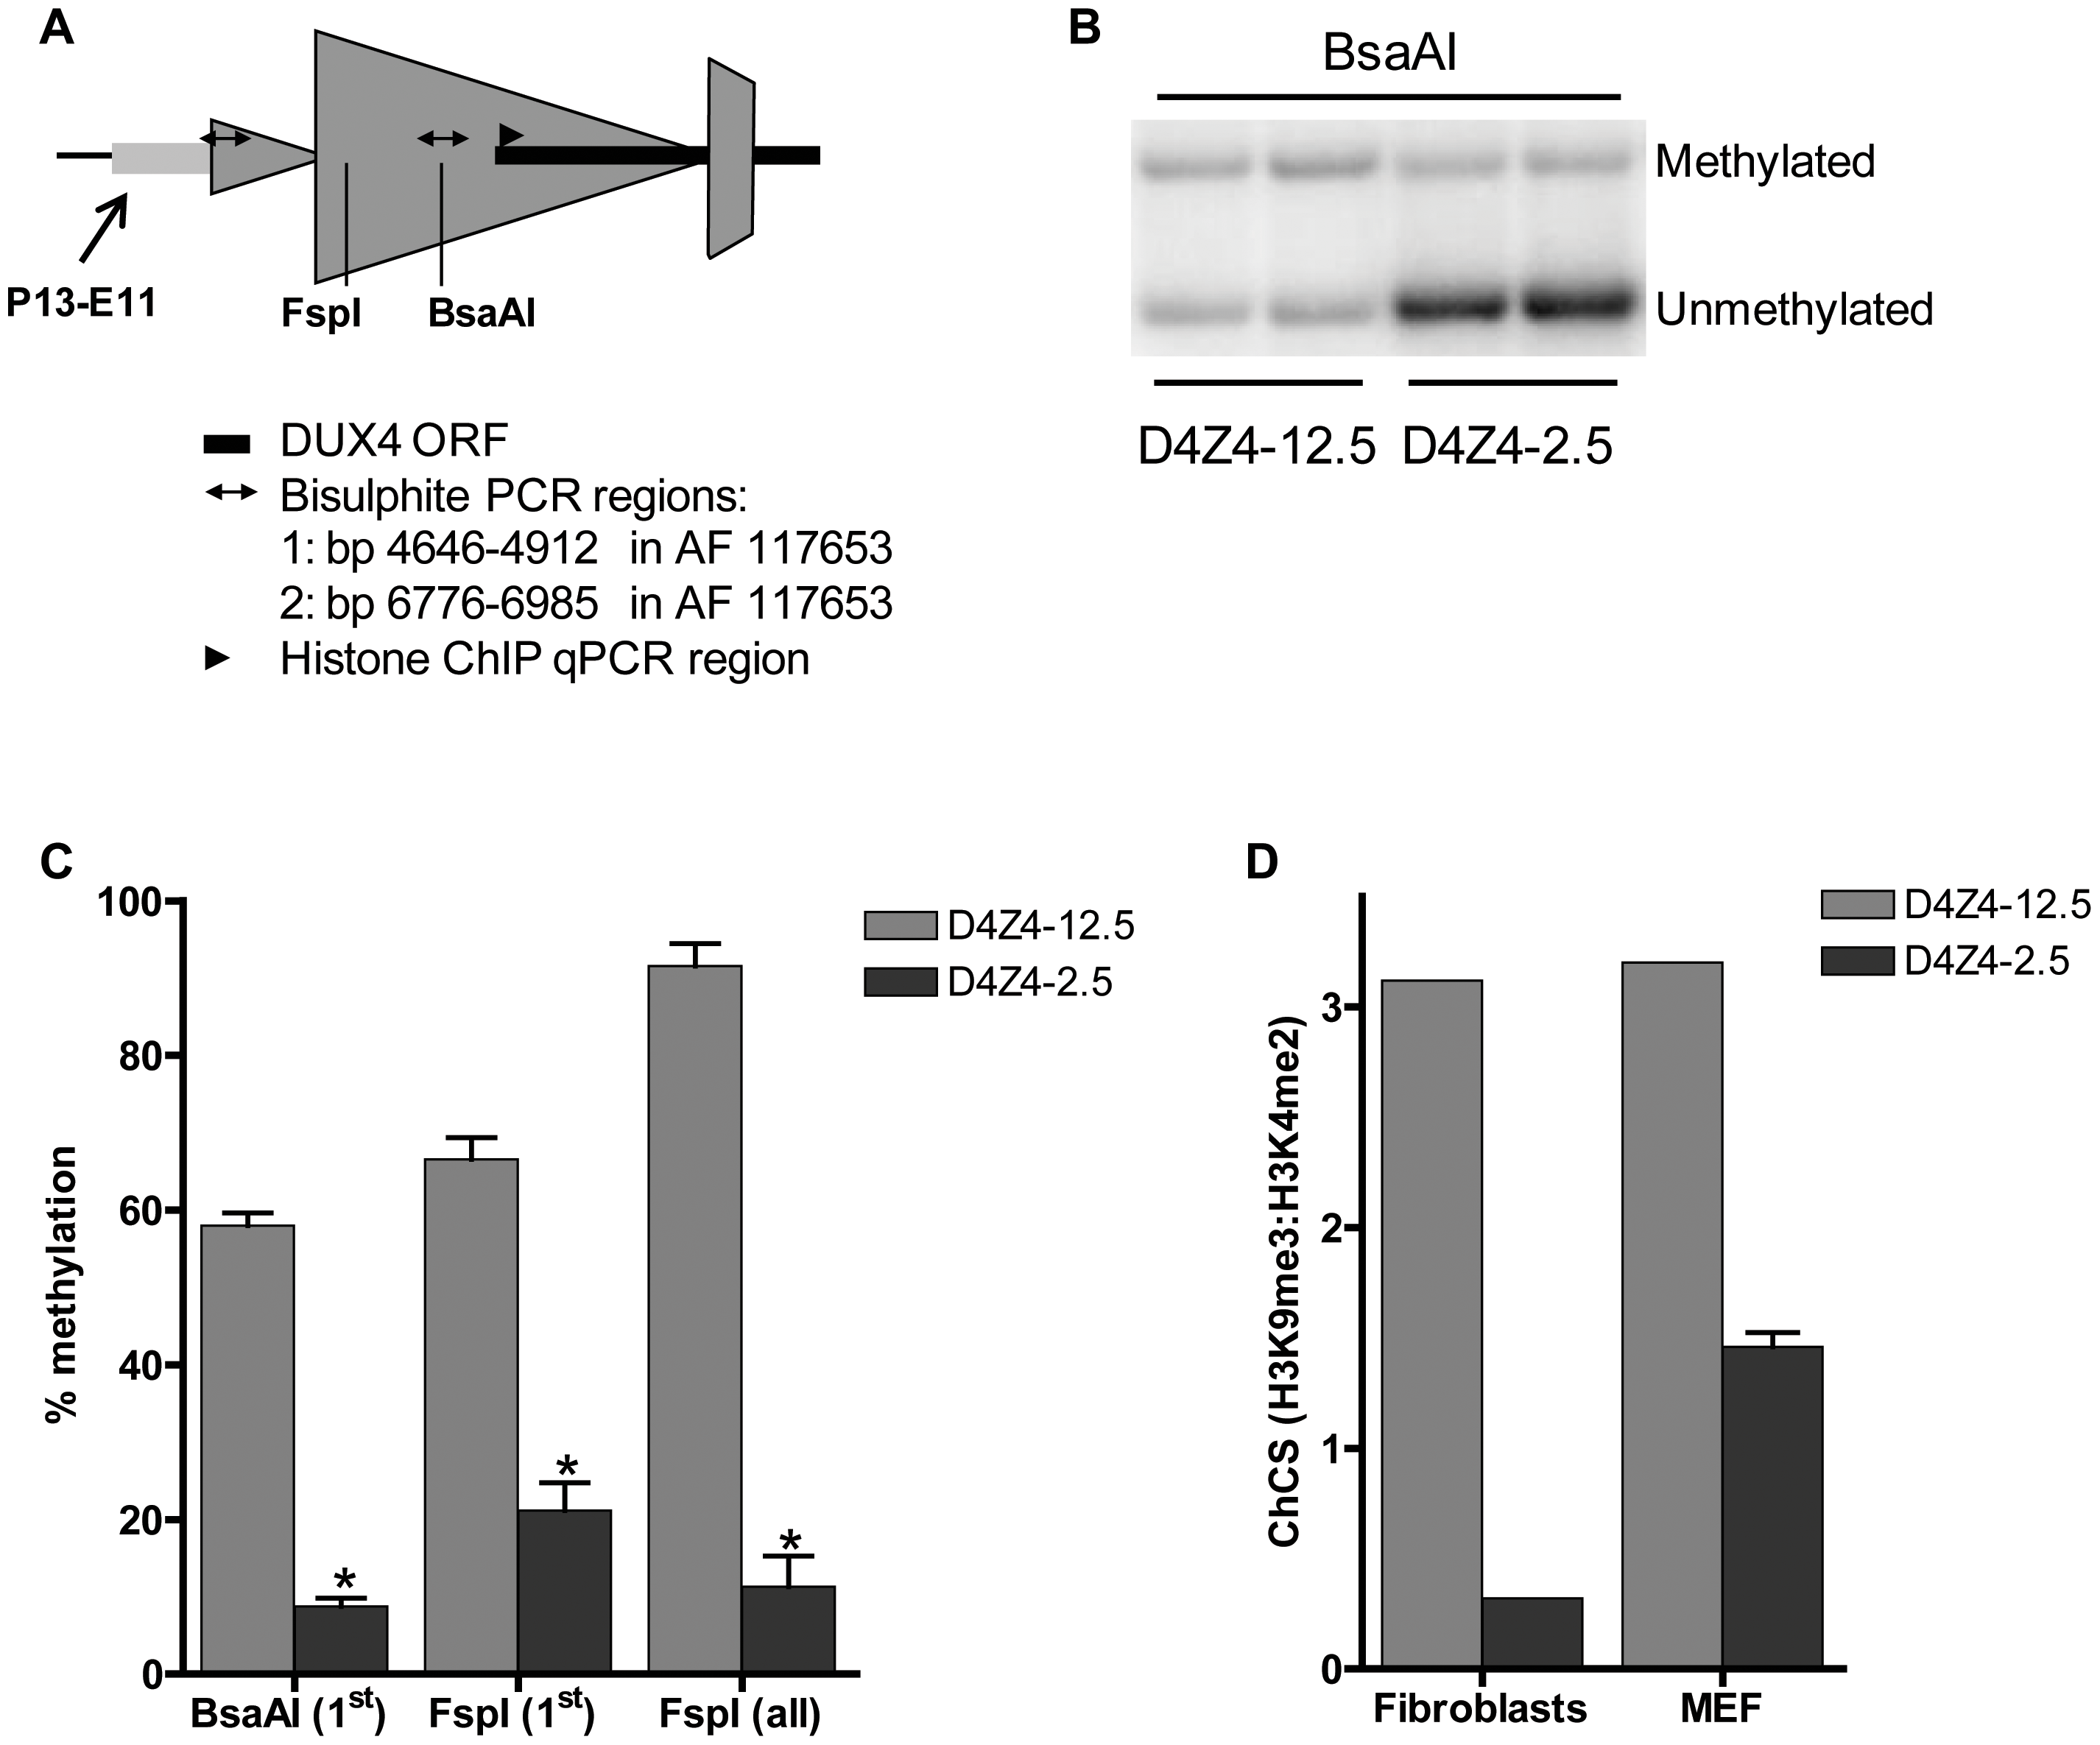 Epigenetic structure of D4Z4 in D4Z4-2.5 and D4Z4-12.5 mice.